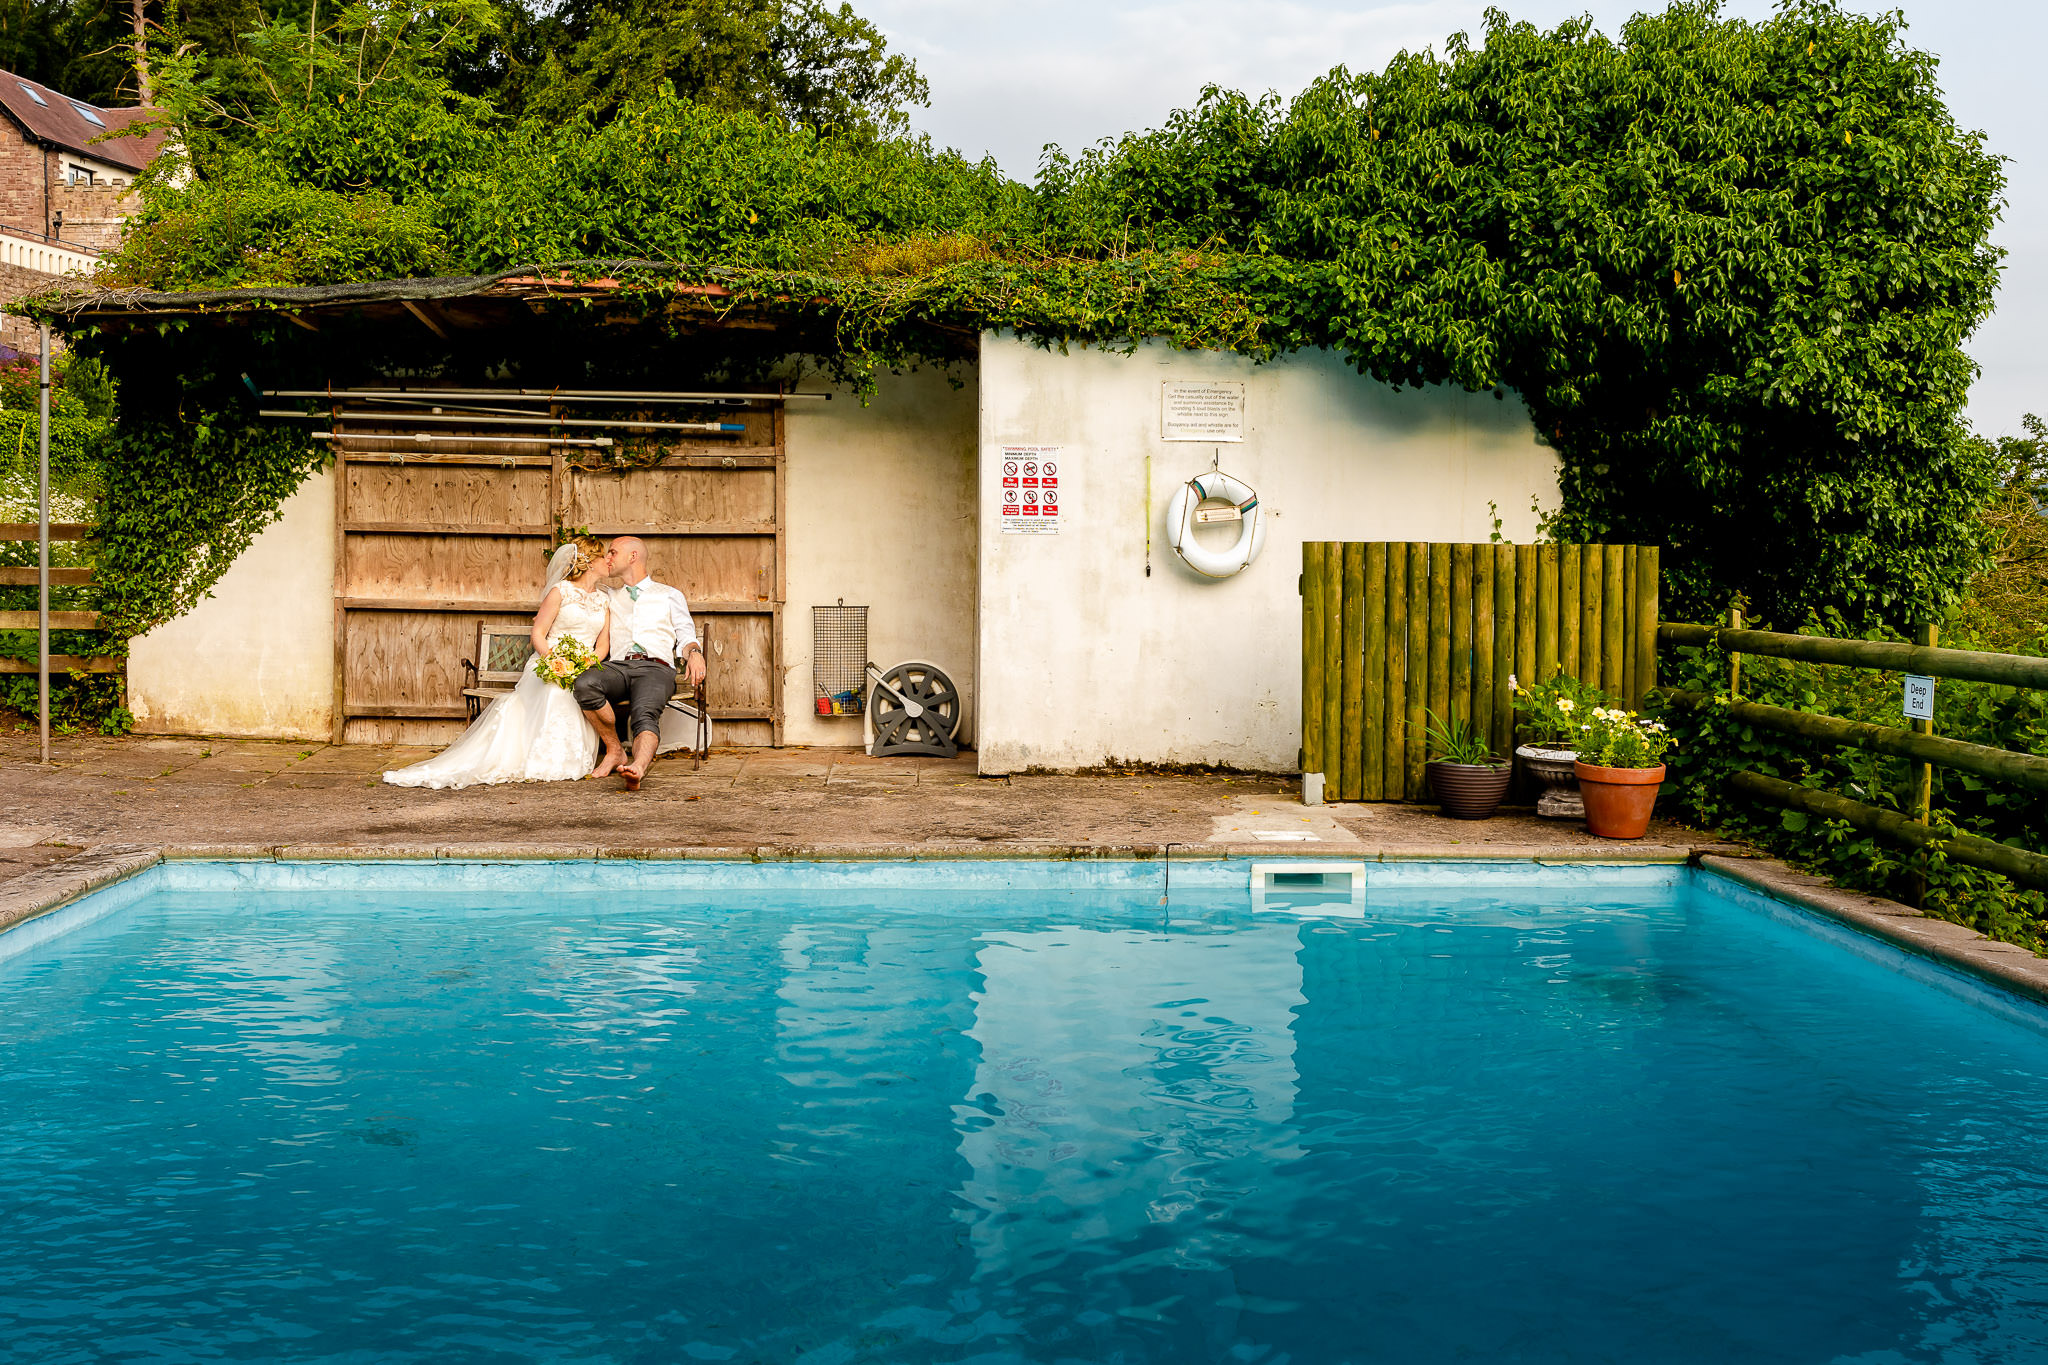 Art by Design - Caer Llan Wedding Photography - Bride and Groom by the pool